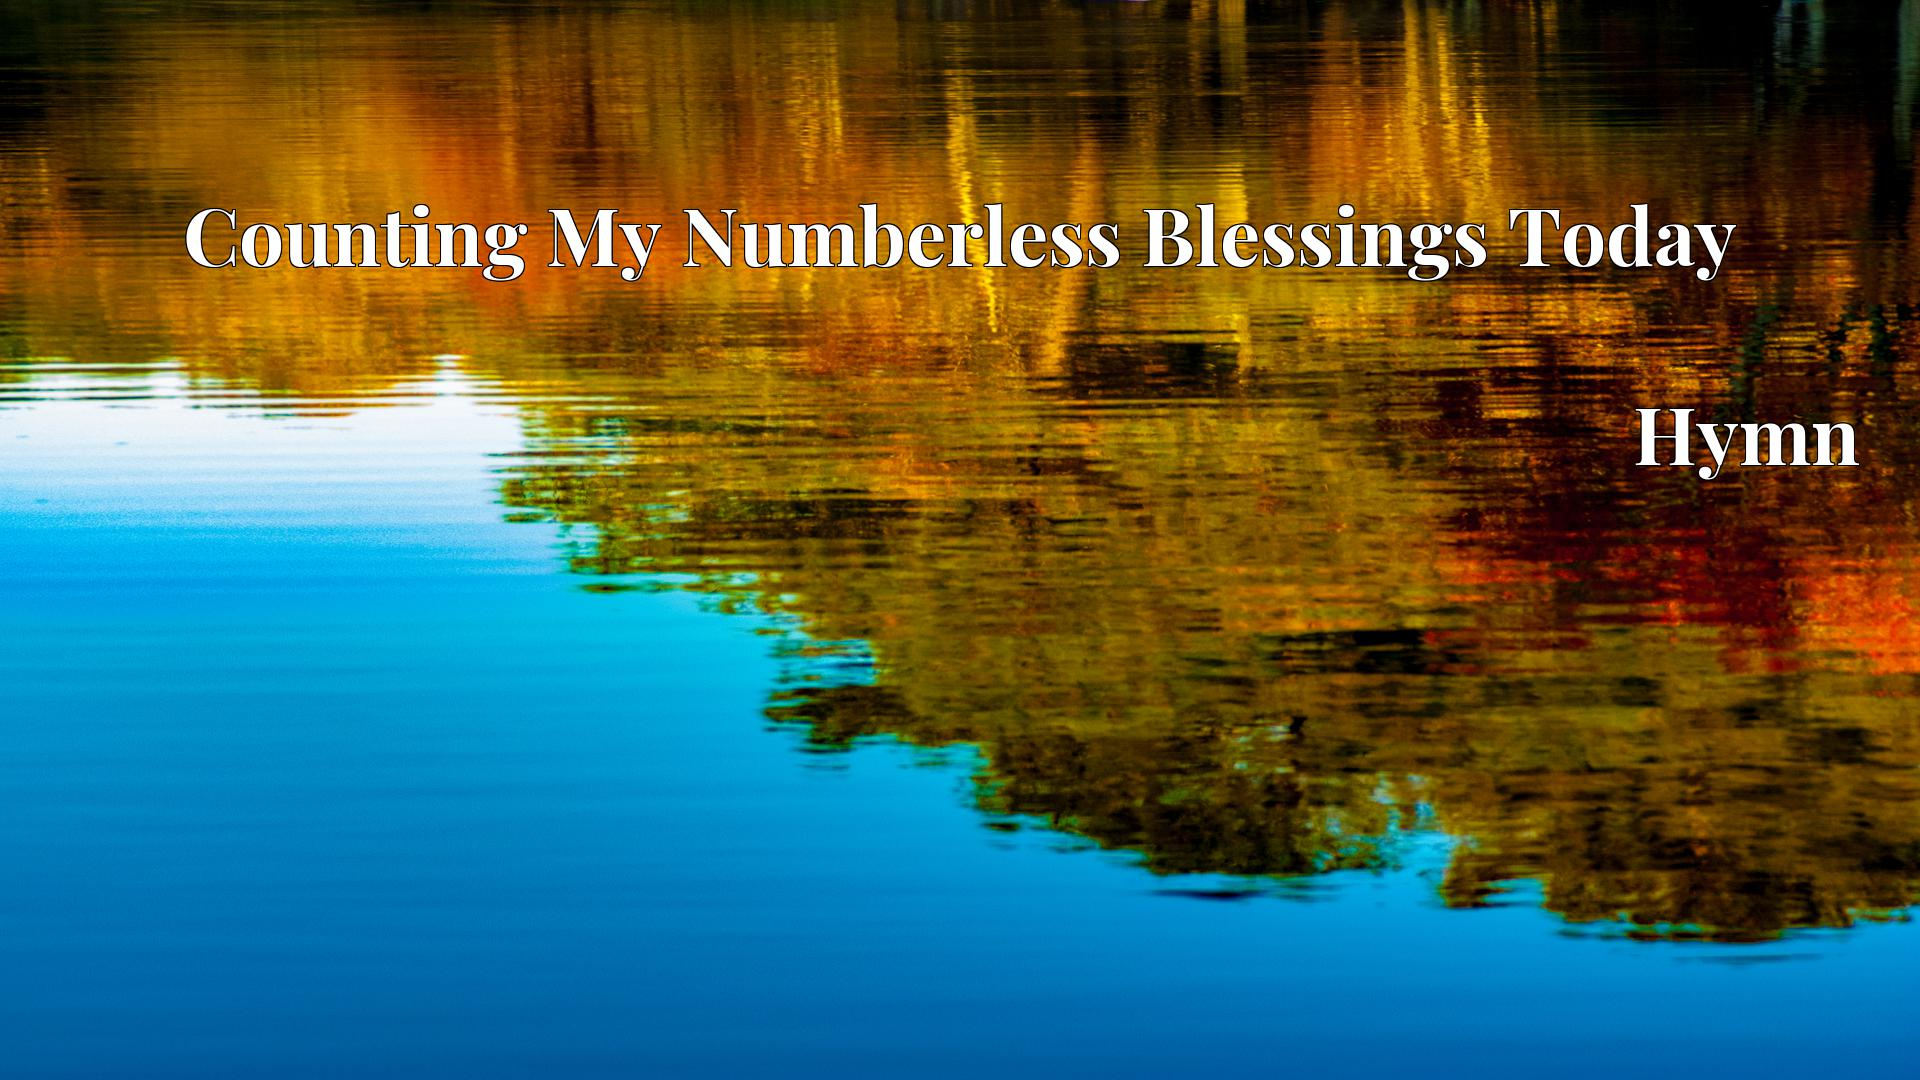 Counting My Numberless Blessings Today - Hymn